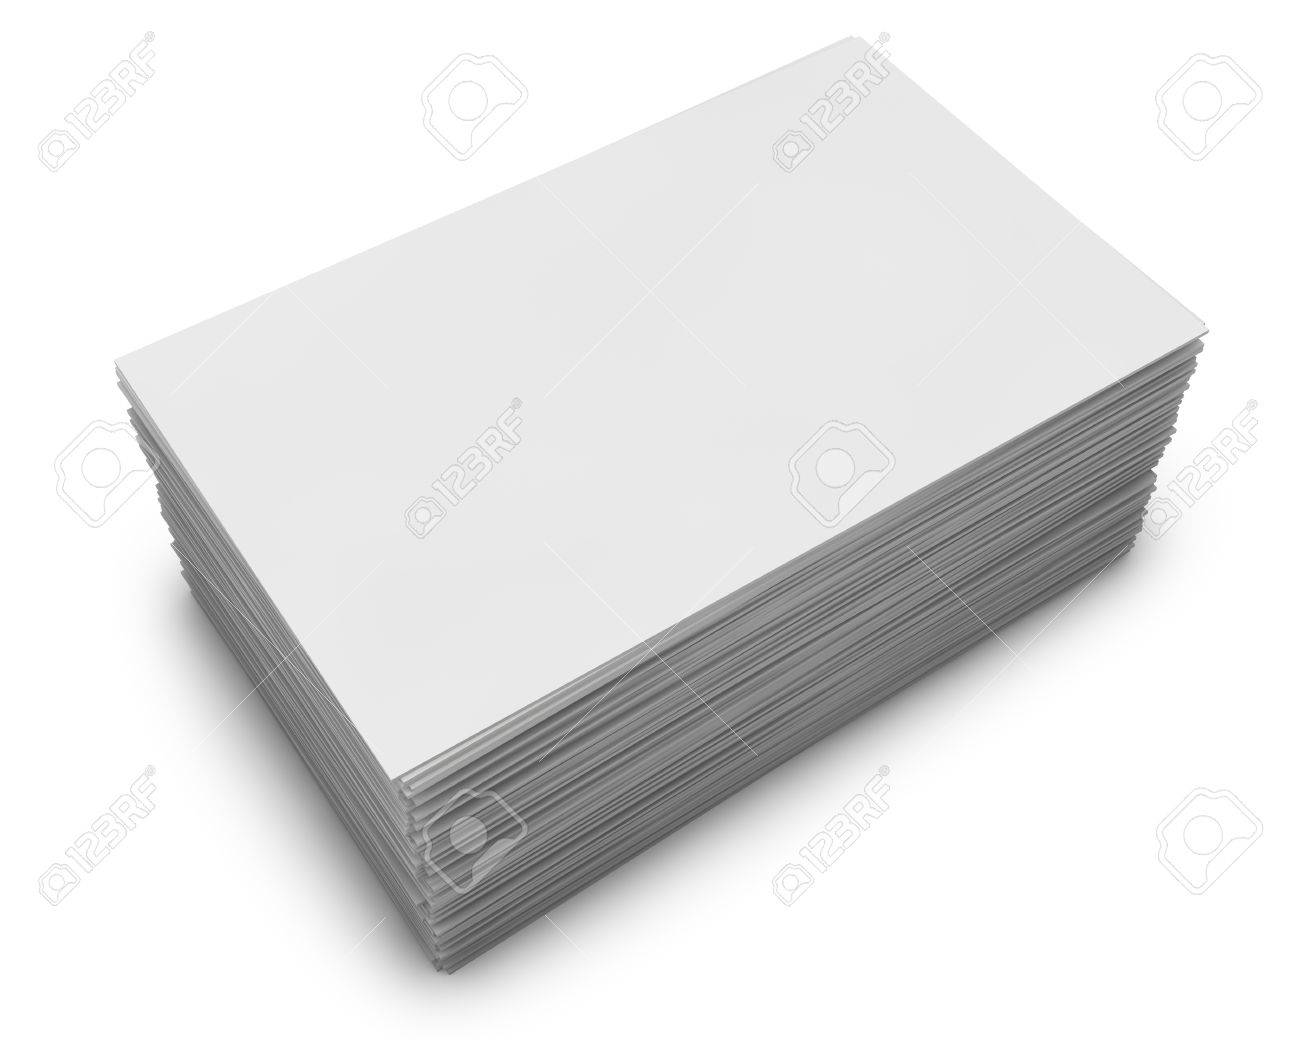 Blank business cards stack isolated on white background stock photo blank business cards stack isolated on white background stock photo 17696240 reheart Image collections